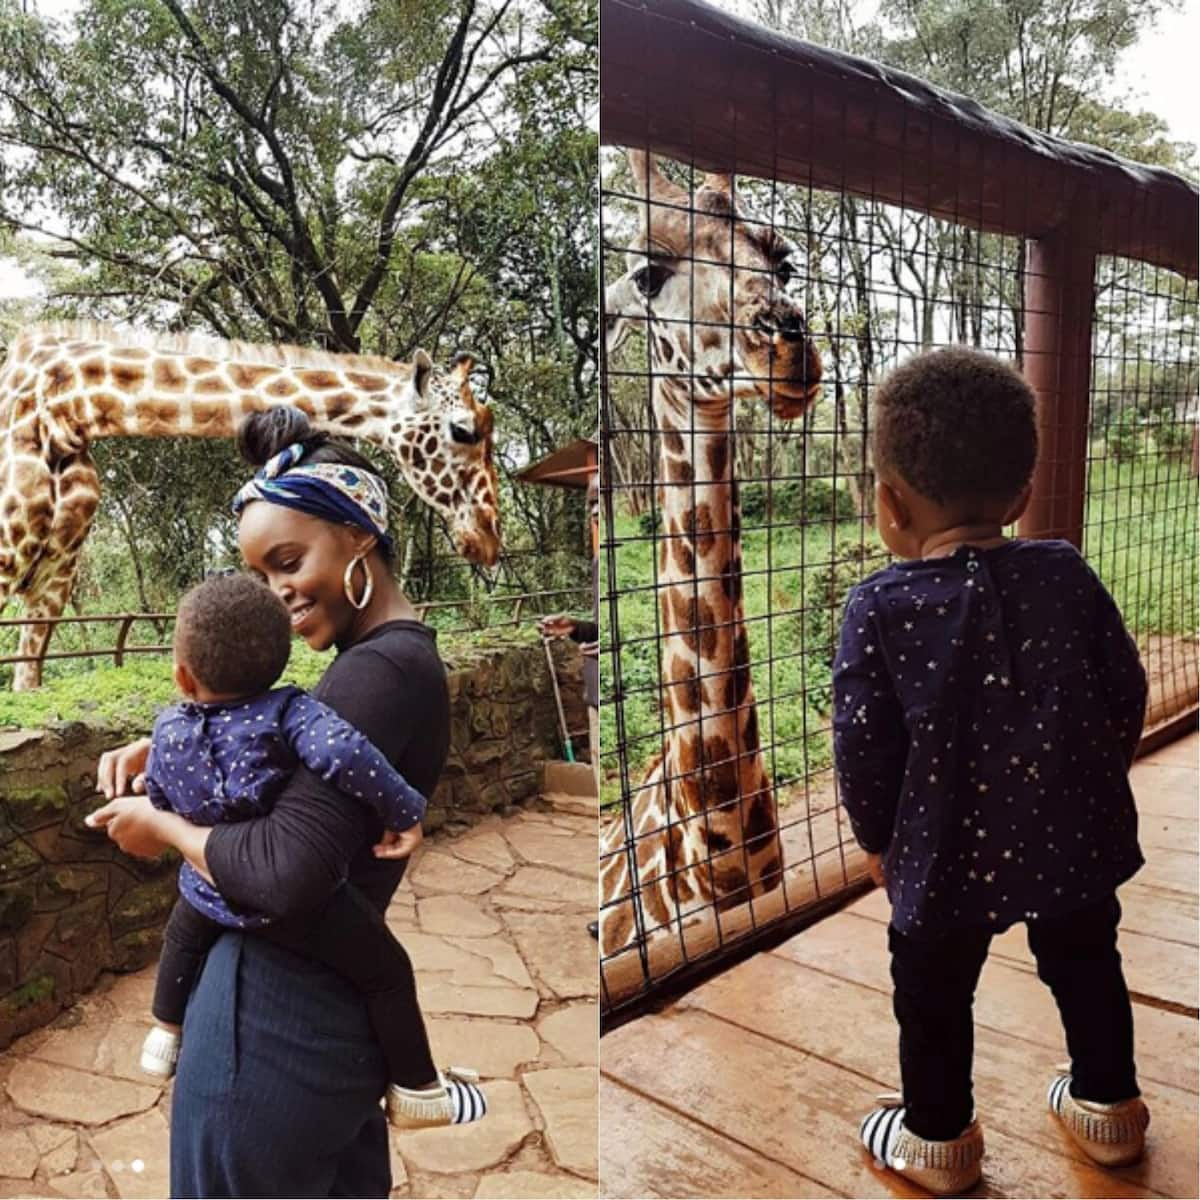 Fashion blogger This is Ess celebrates daughter's birthday months after silent breakup with rich hubby